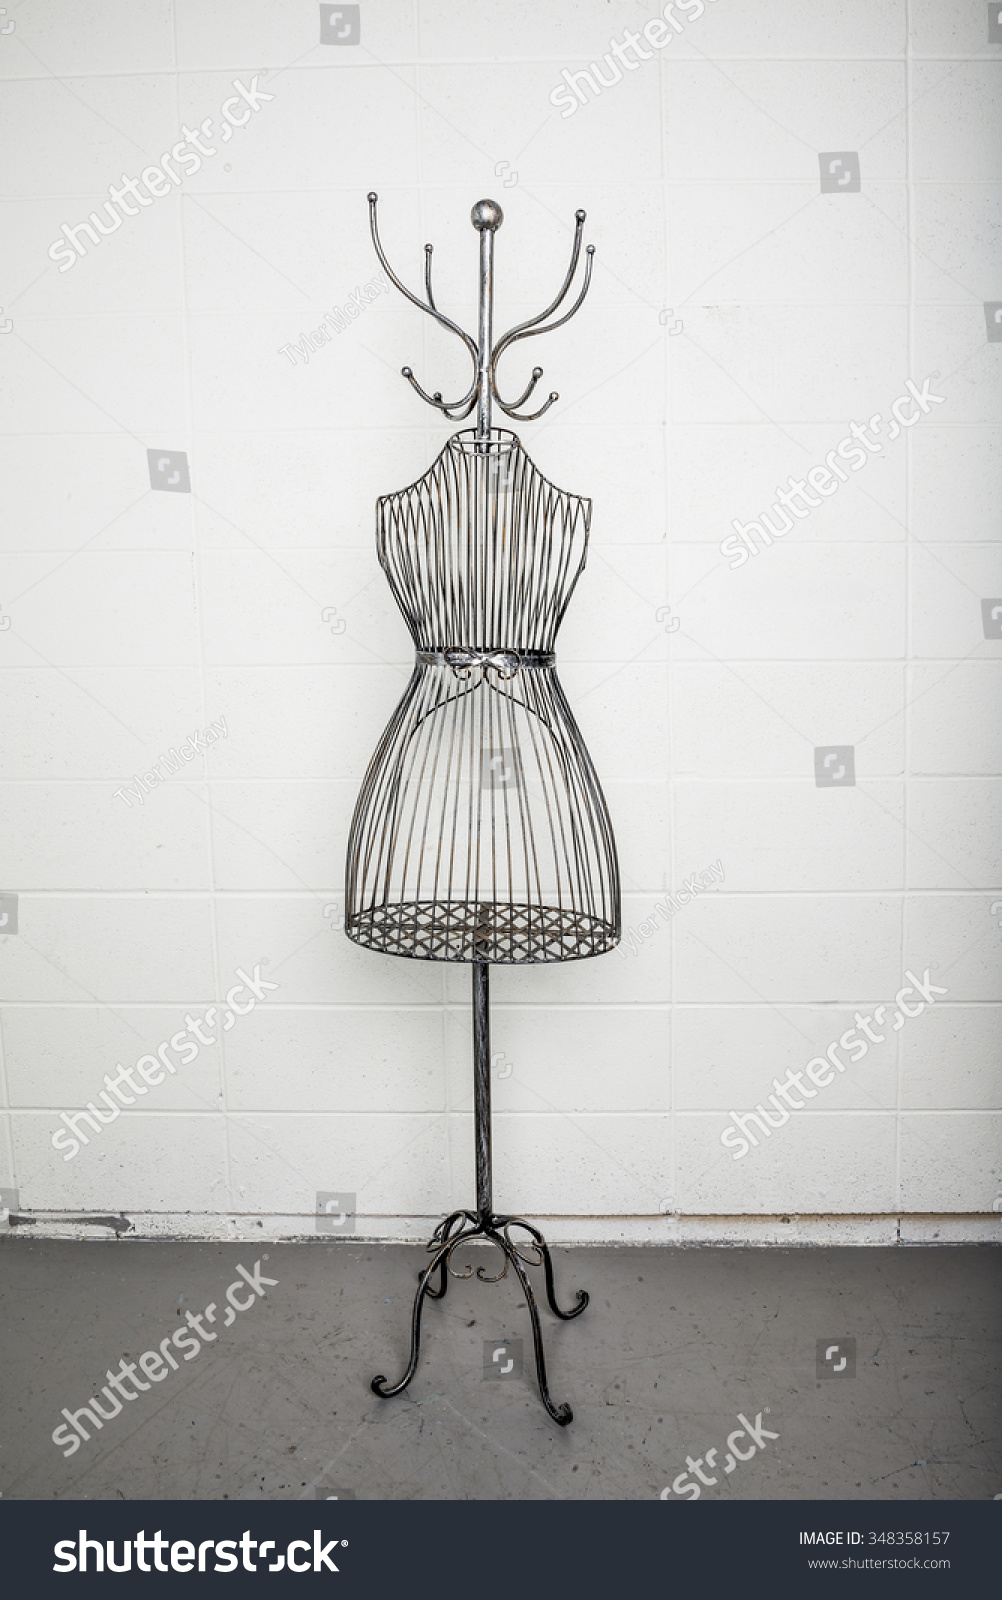 Vintage Metal Coat Rack Metal Wire Stock Photo (Edit Now) 348358157 ...